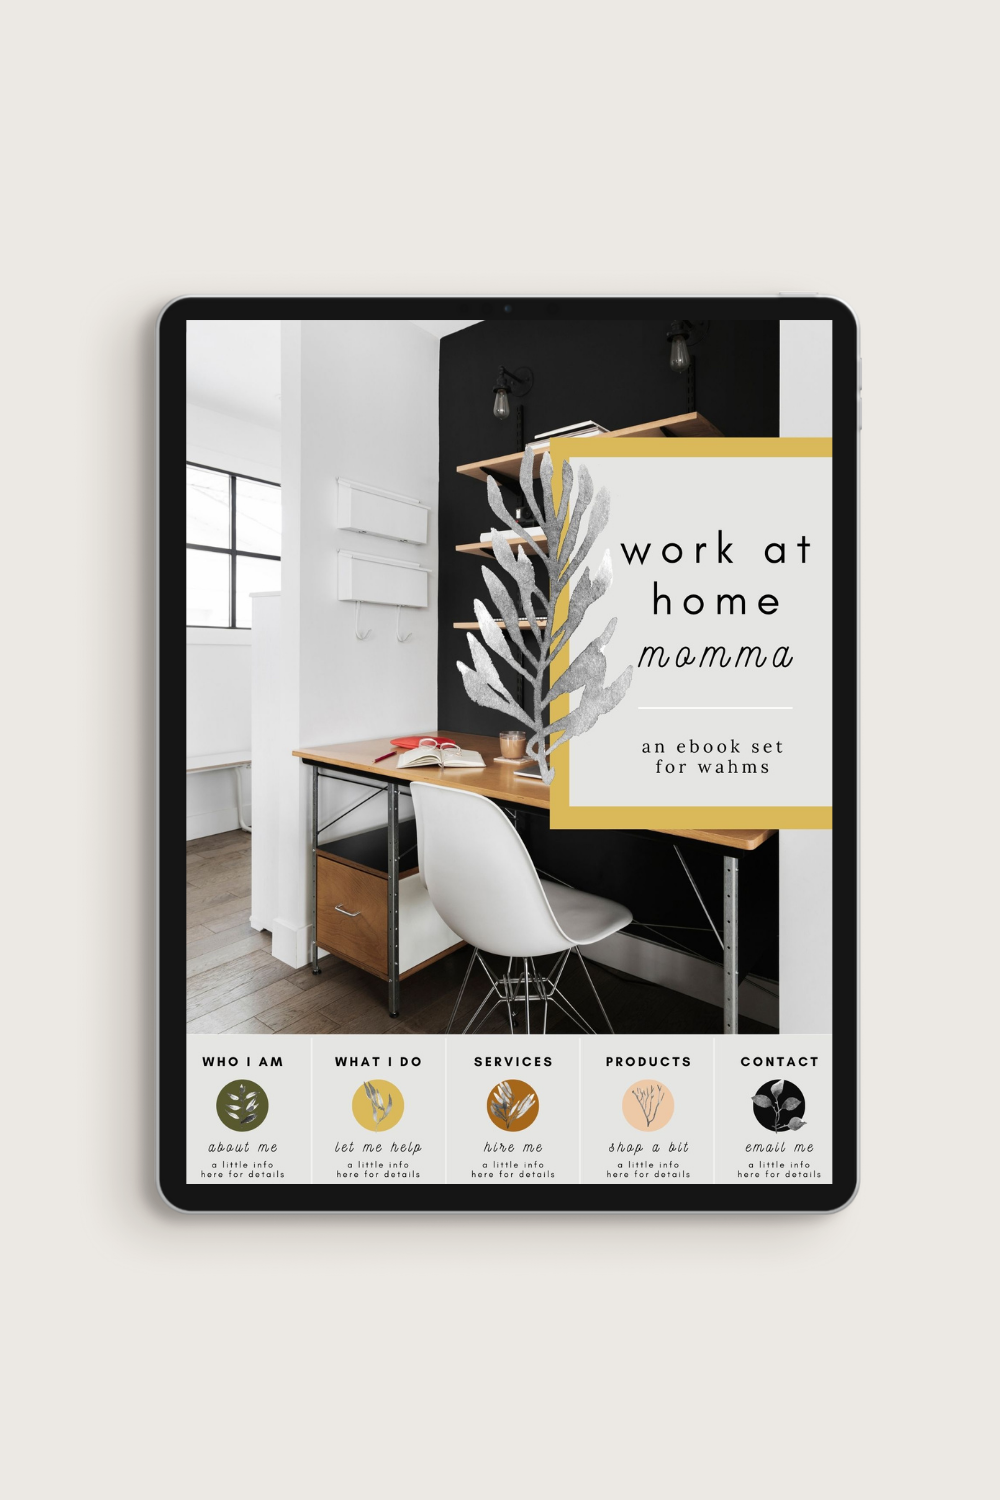 Work at Home Momma Canva Template